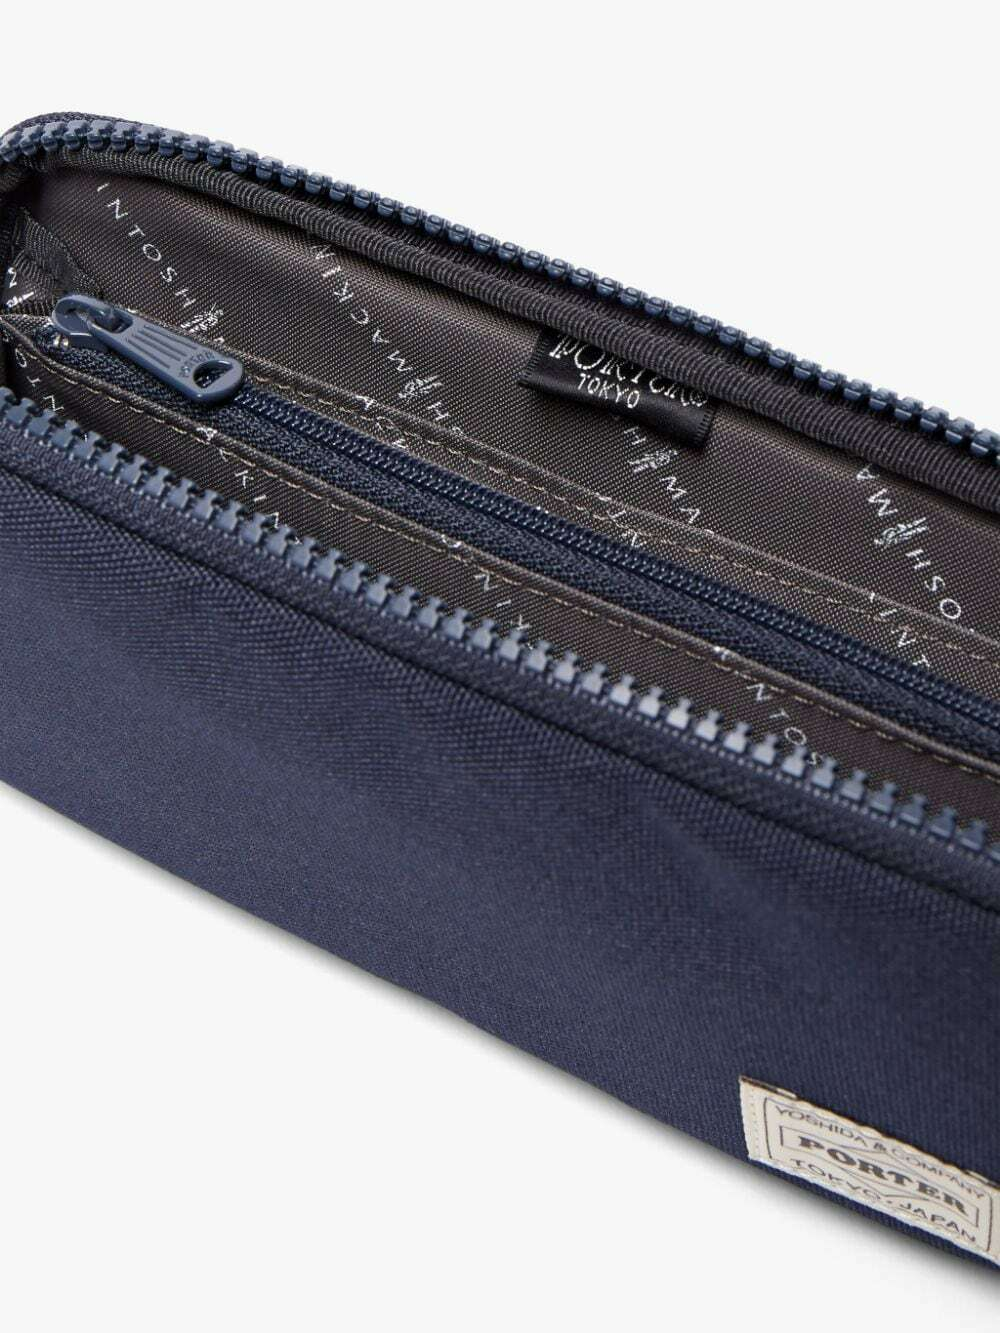 Porter X Mackintosh Blue Wallet Clutch Pouch *NEW WITH TAGS*